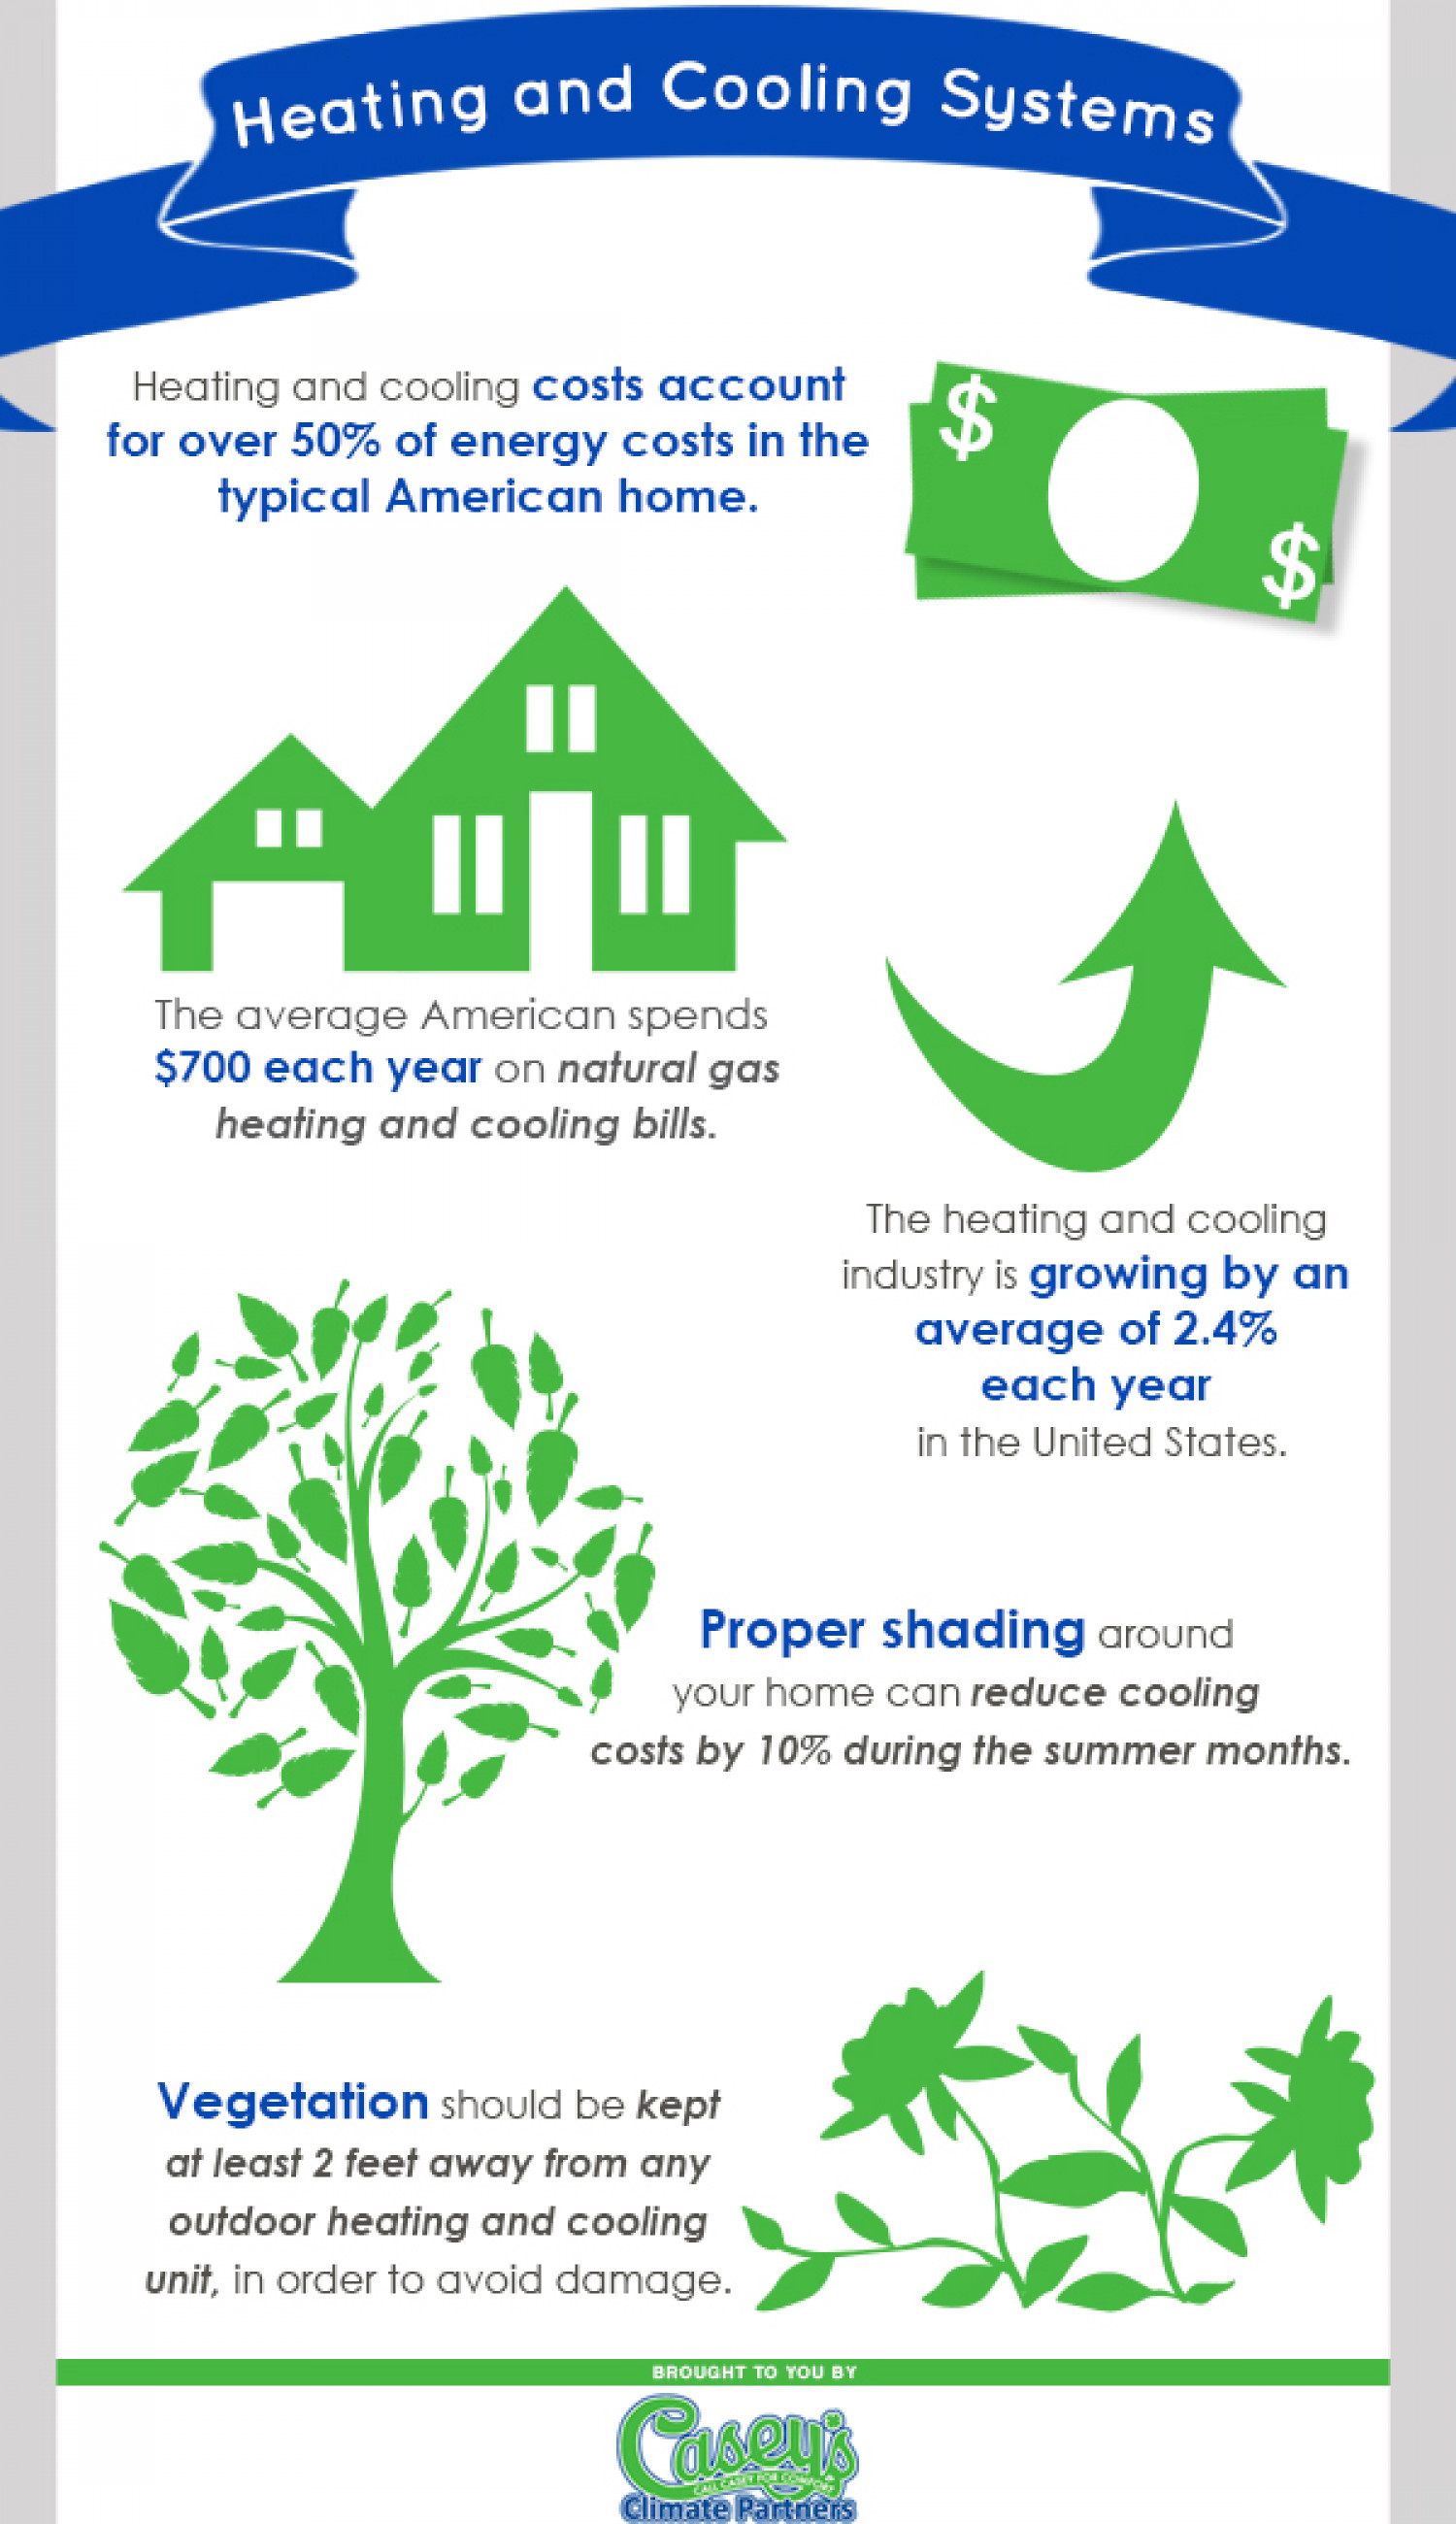 Heating and Cooling Systems Infographic